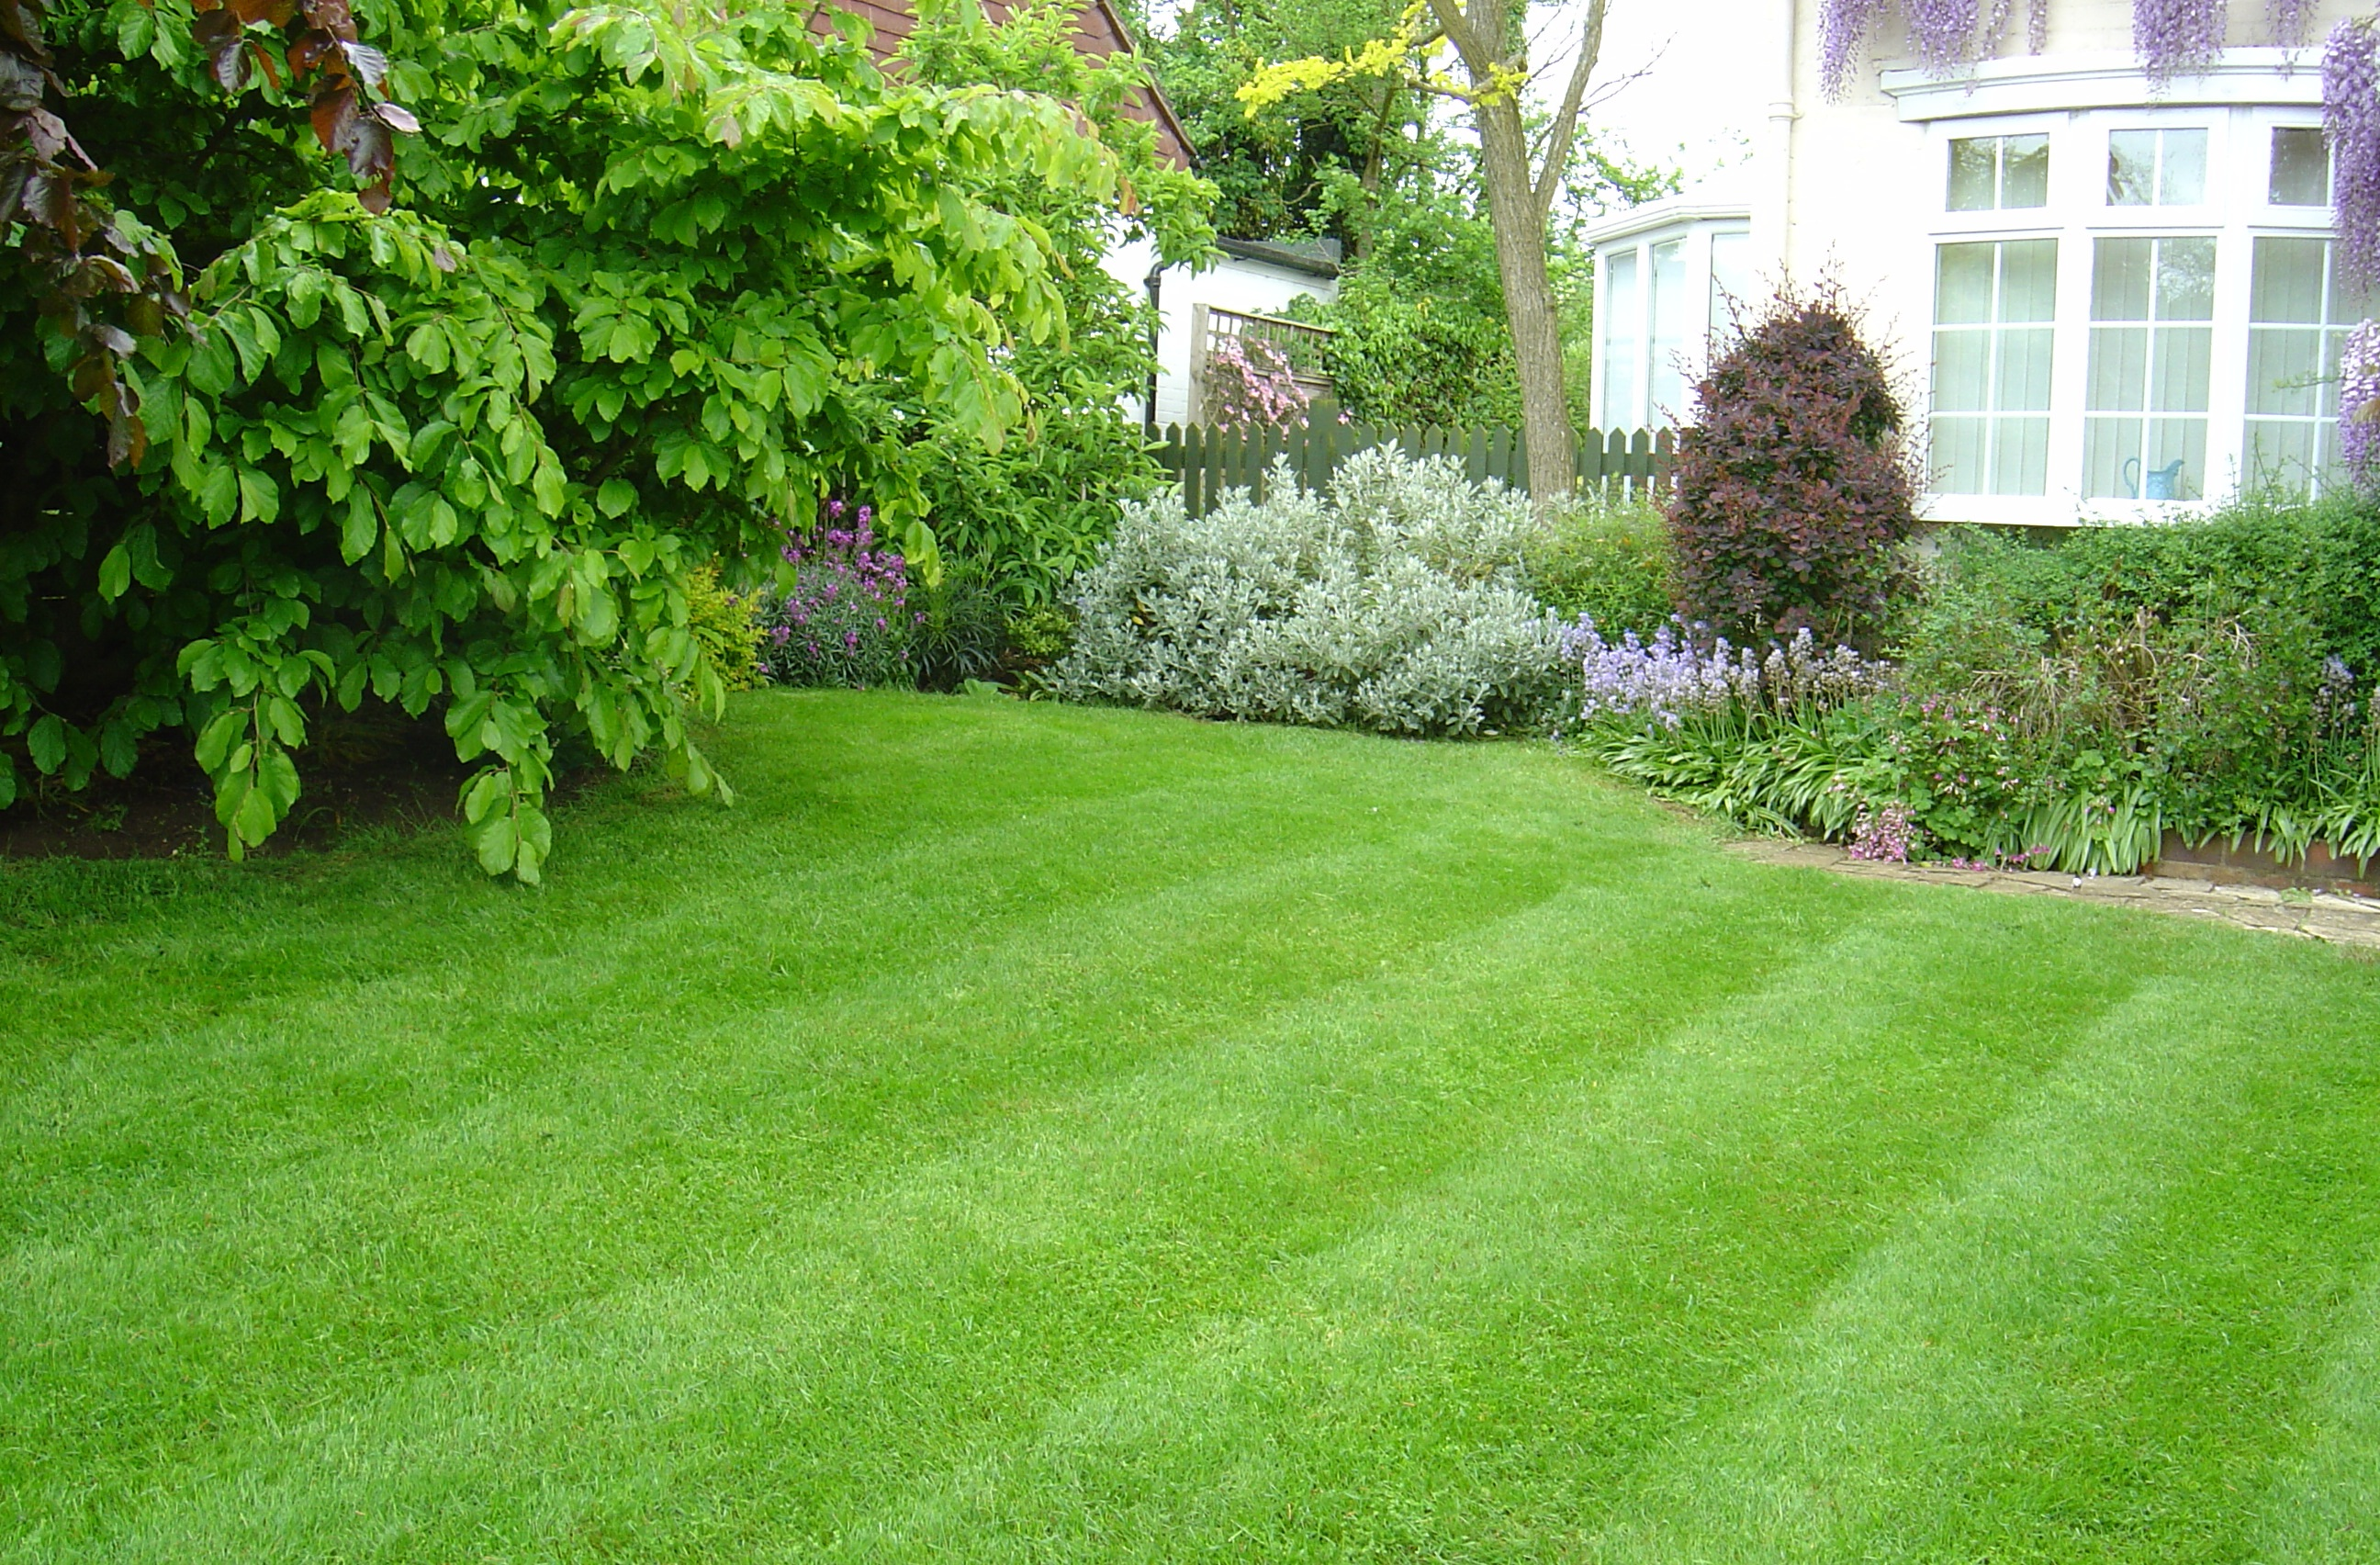 How to care for a lawn hirerush blog for Best grass for landscaping